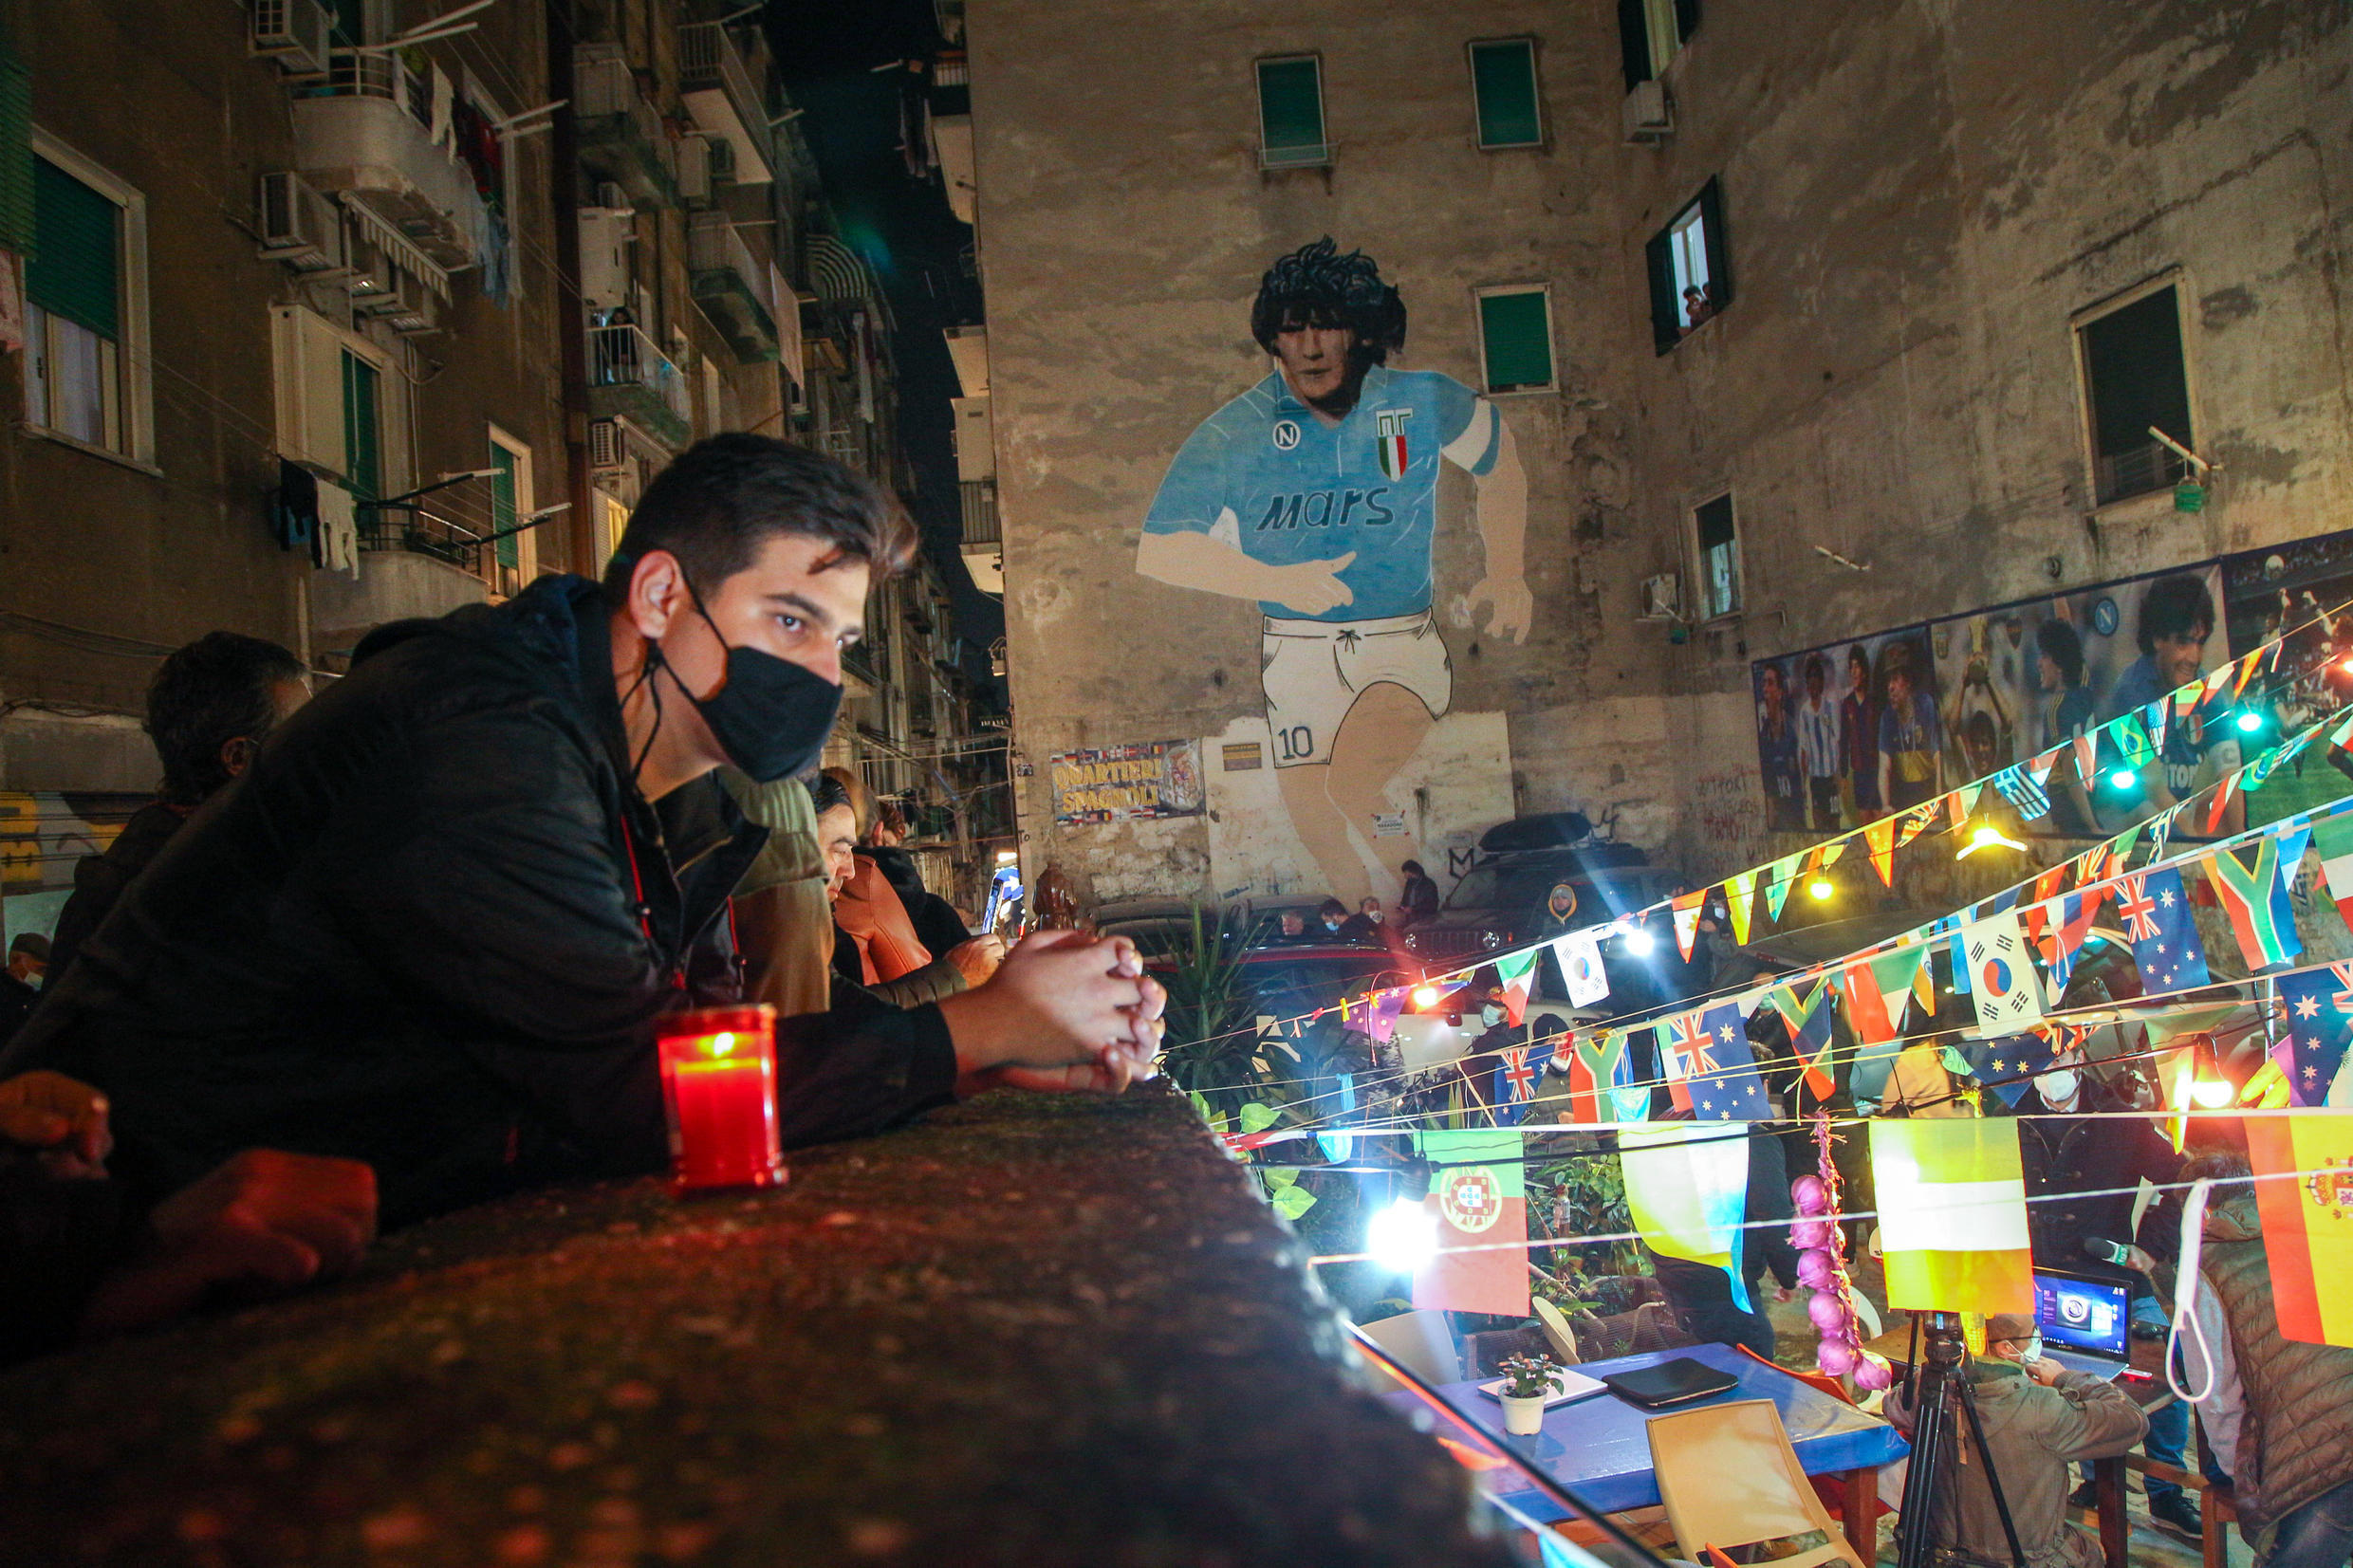 The city of Naples mourned Diego Maradona, who became a hero by leading Napoli to two Italian league titles